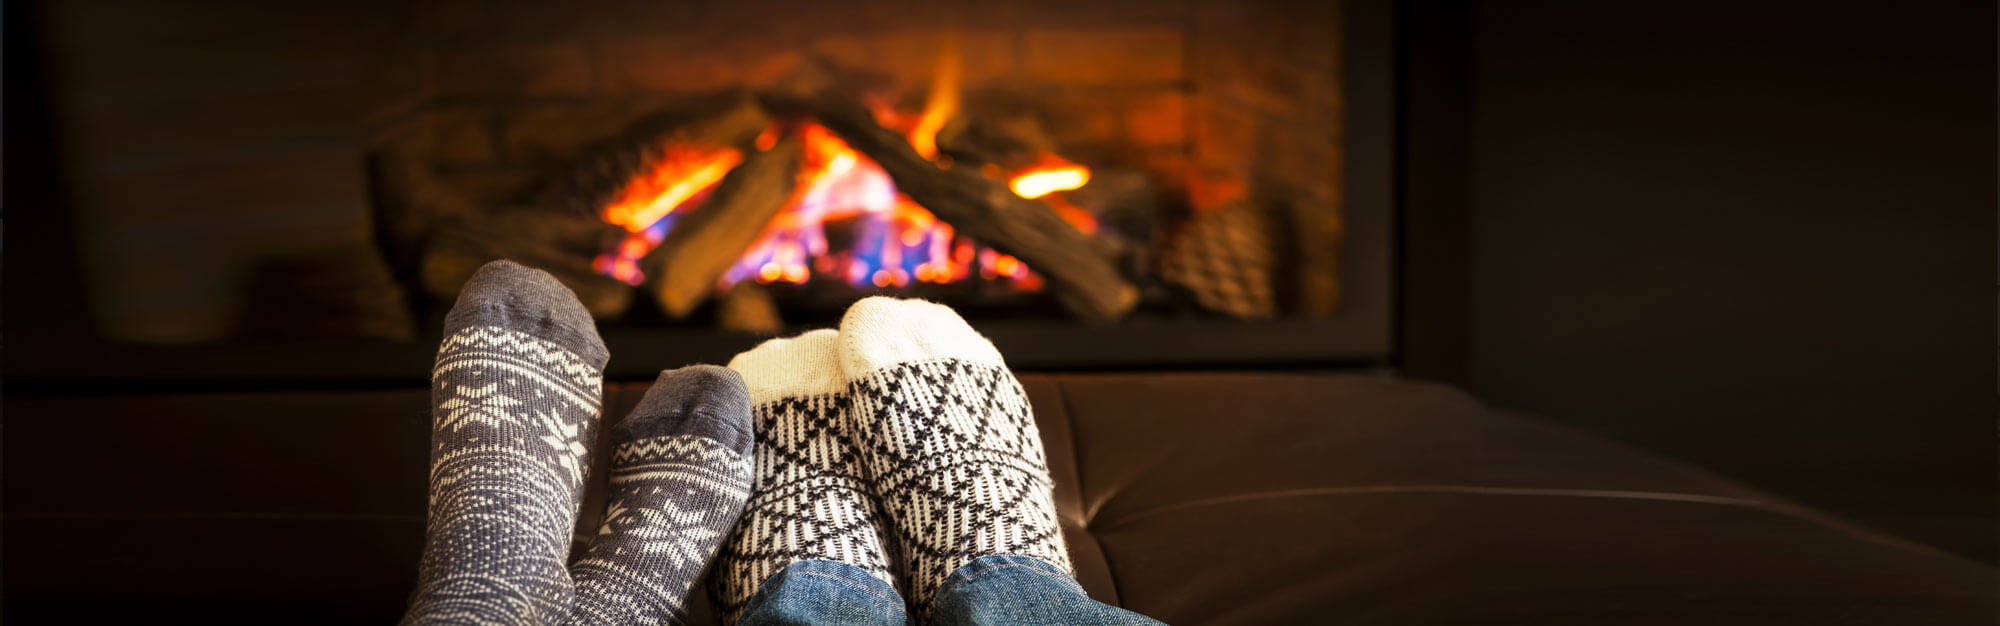 Two pairs of feet wearing warm winter socks warming in front of a fireplace